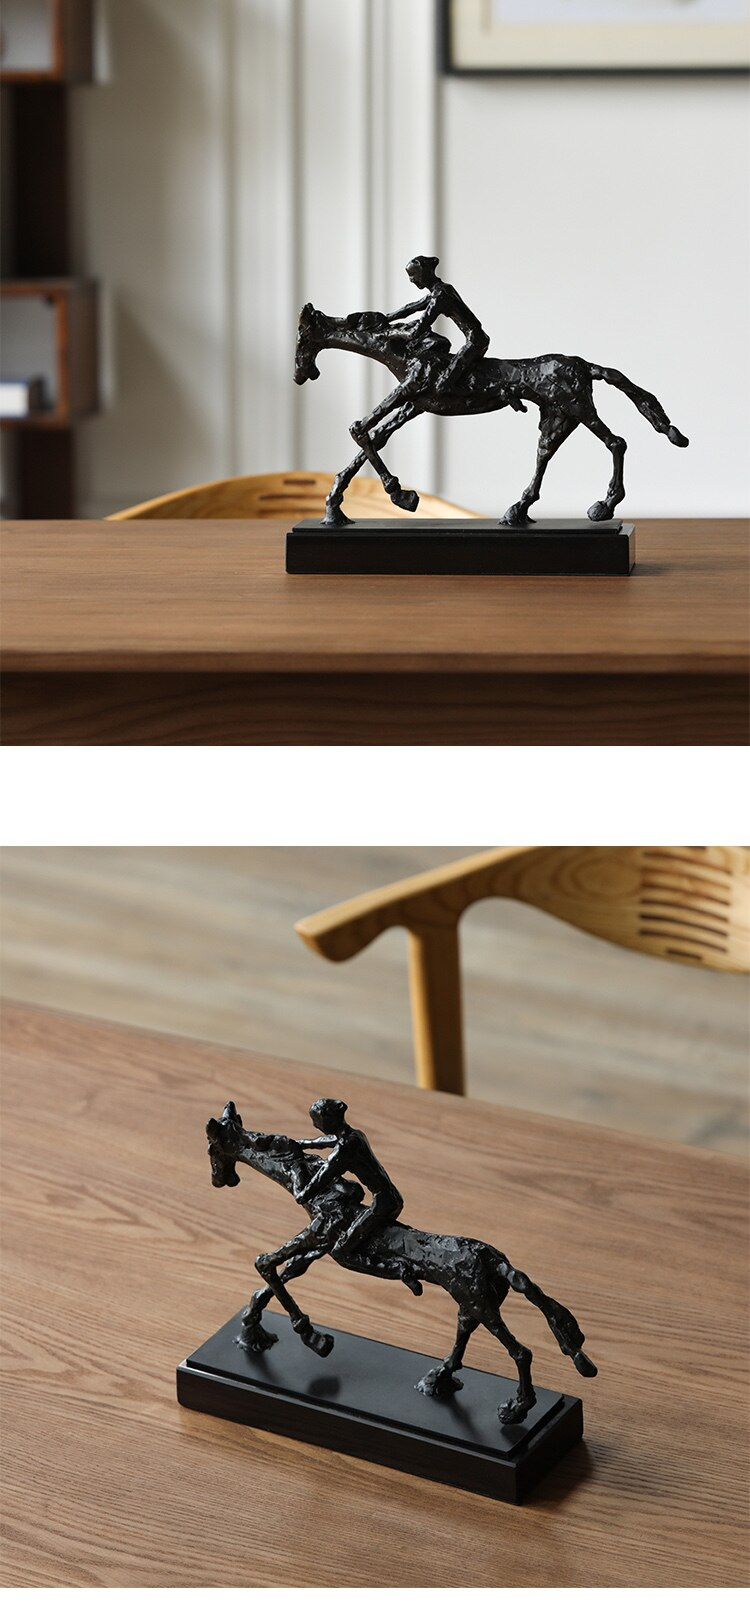 Creative Black Metal Riding Horse character Statue Home Decor Crafts Room Decoration Objects Office Marble Figurines Sculpture